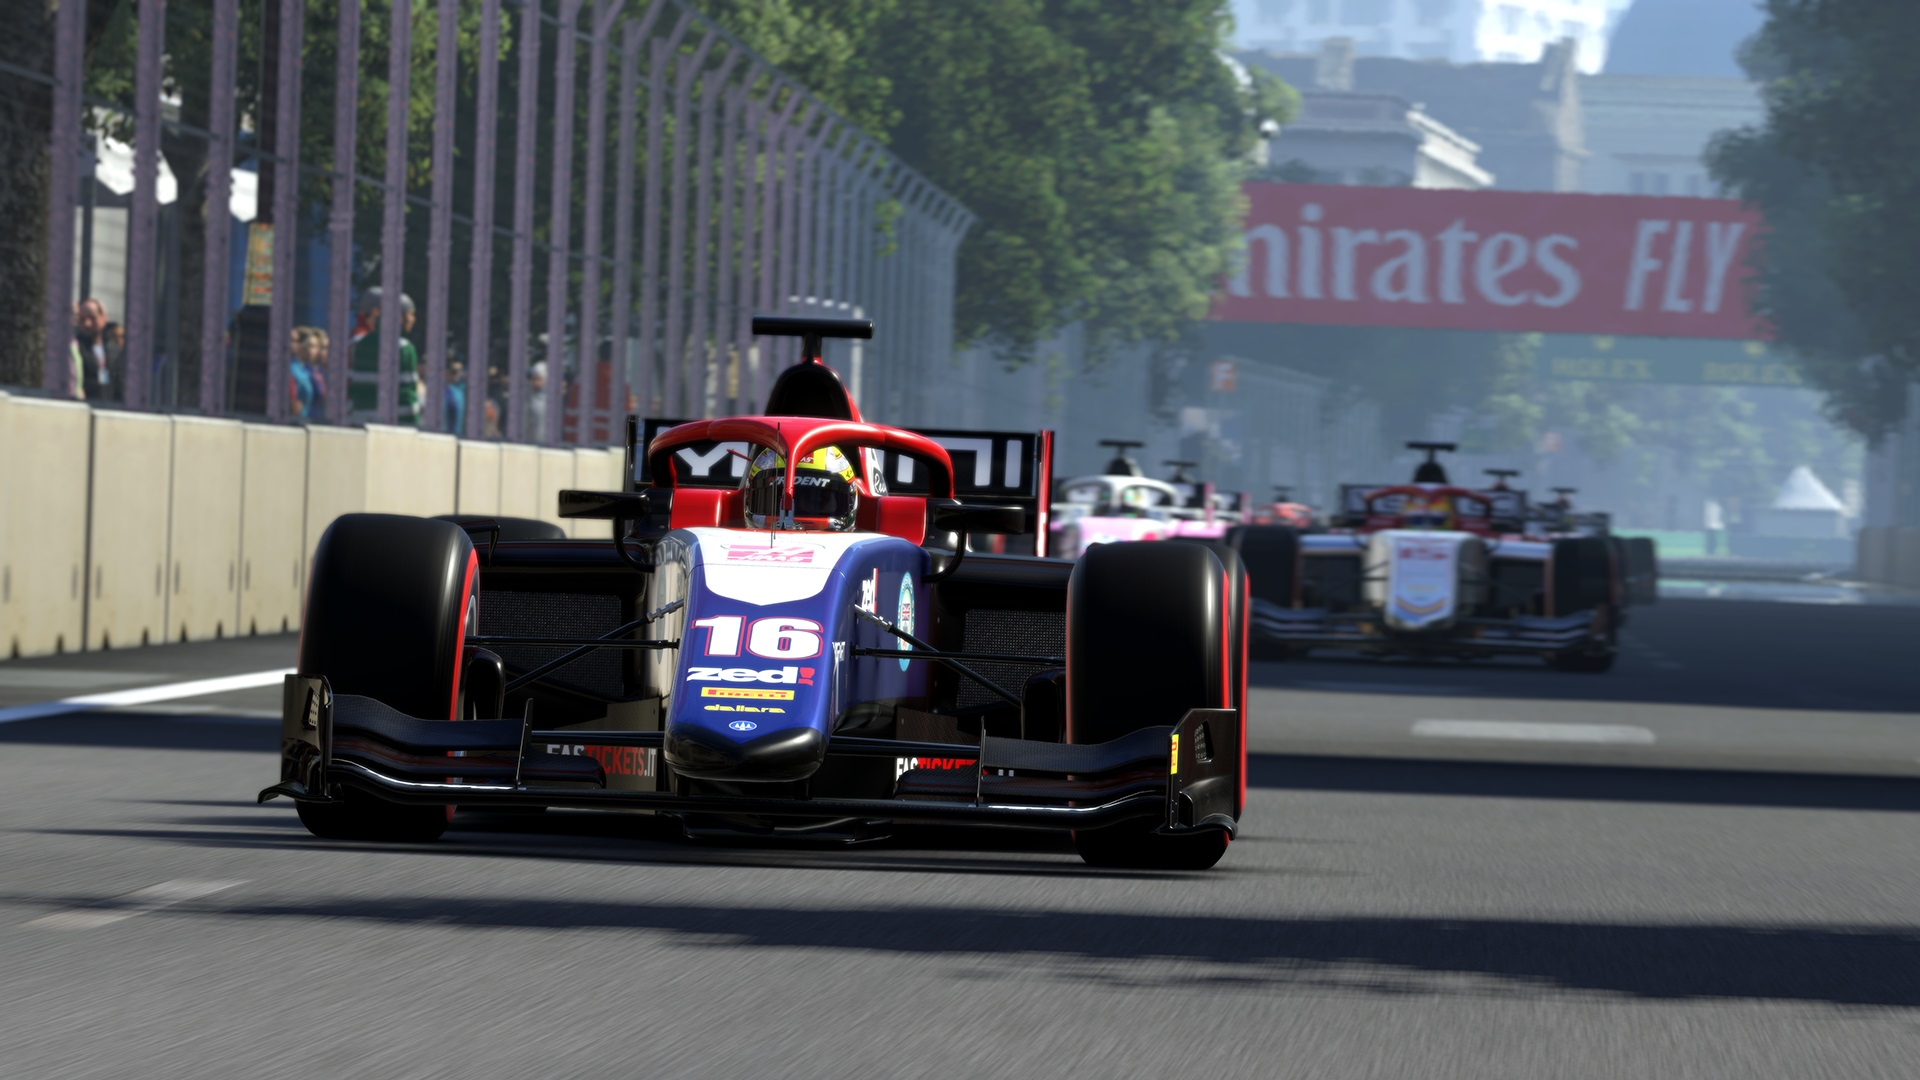 Alain Prost, Ayrton Senna, Codemasters, Driving, F1 2019, F1 2019 Legends Edition Senna & Prost Review, F1 2019 Review, multiplayer, Racing, Rating 8/10, simulation, Sports, Xbox One, Xbox One Review